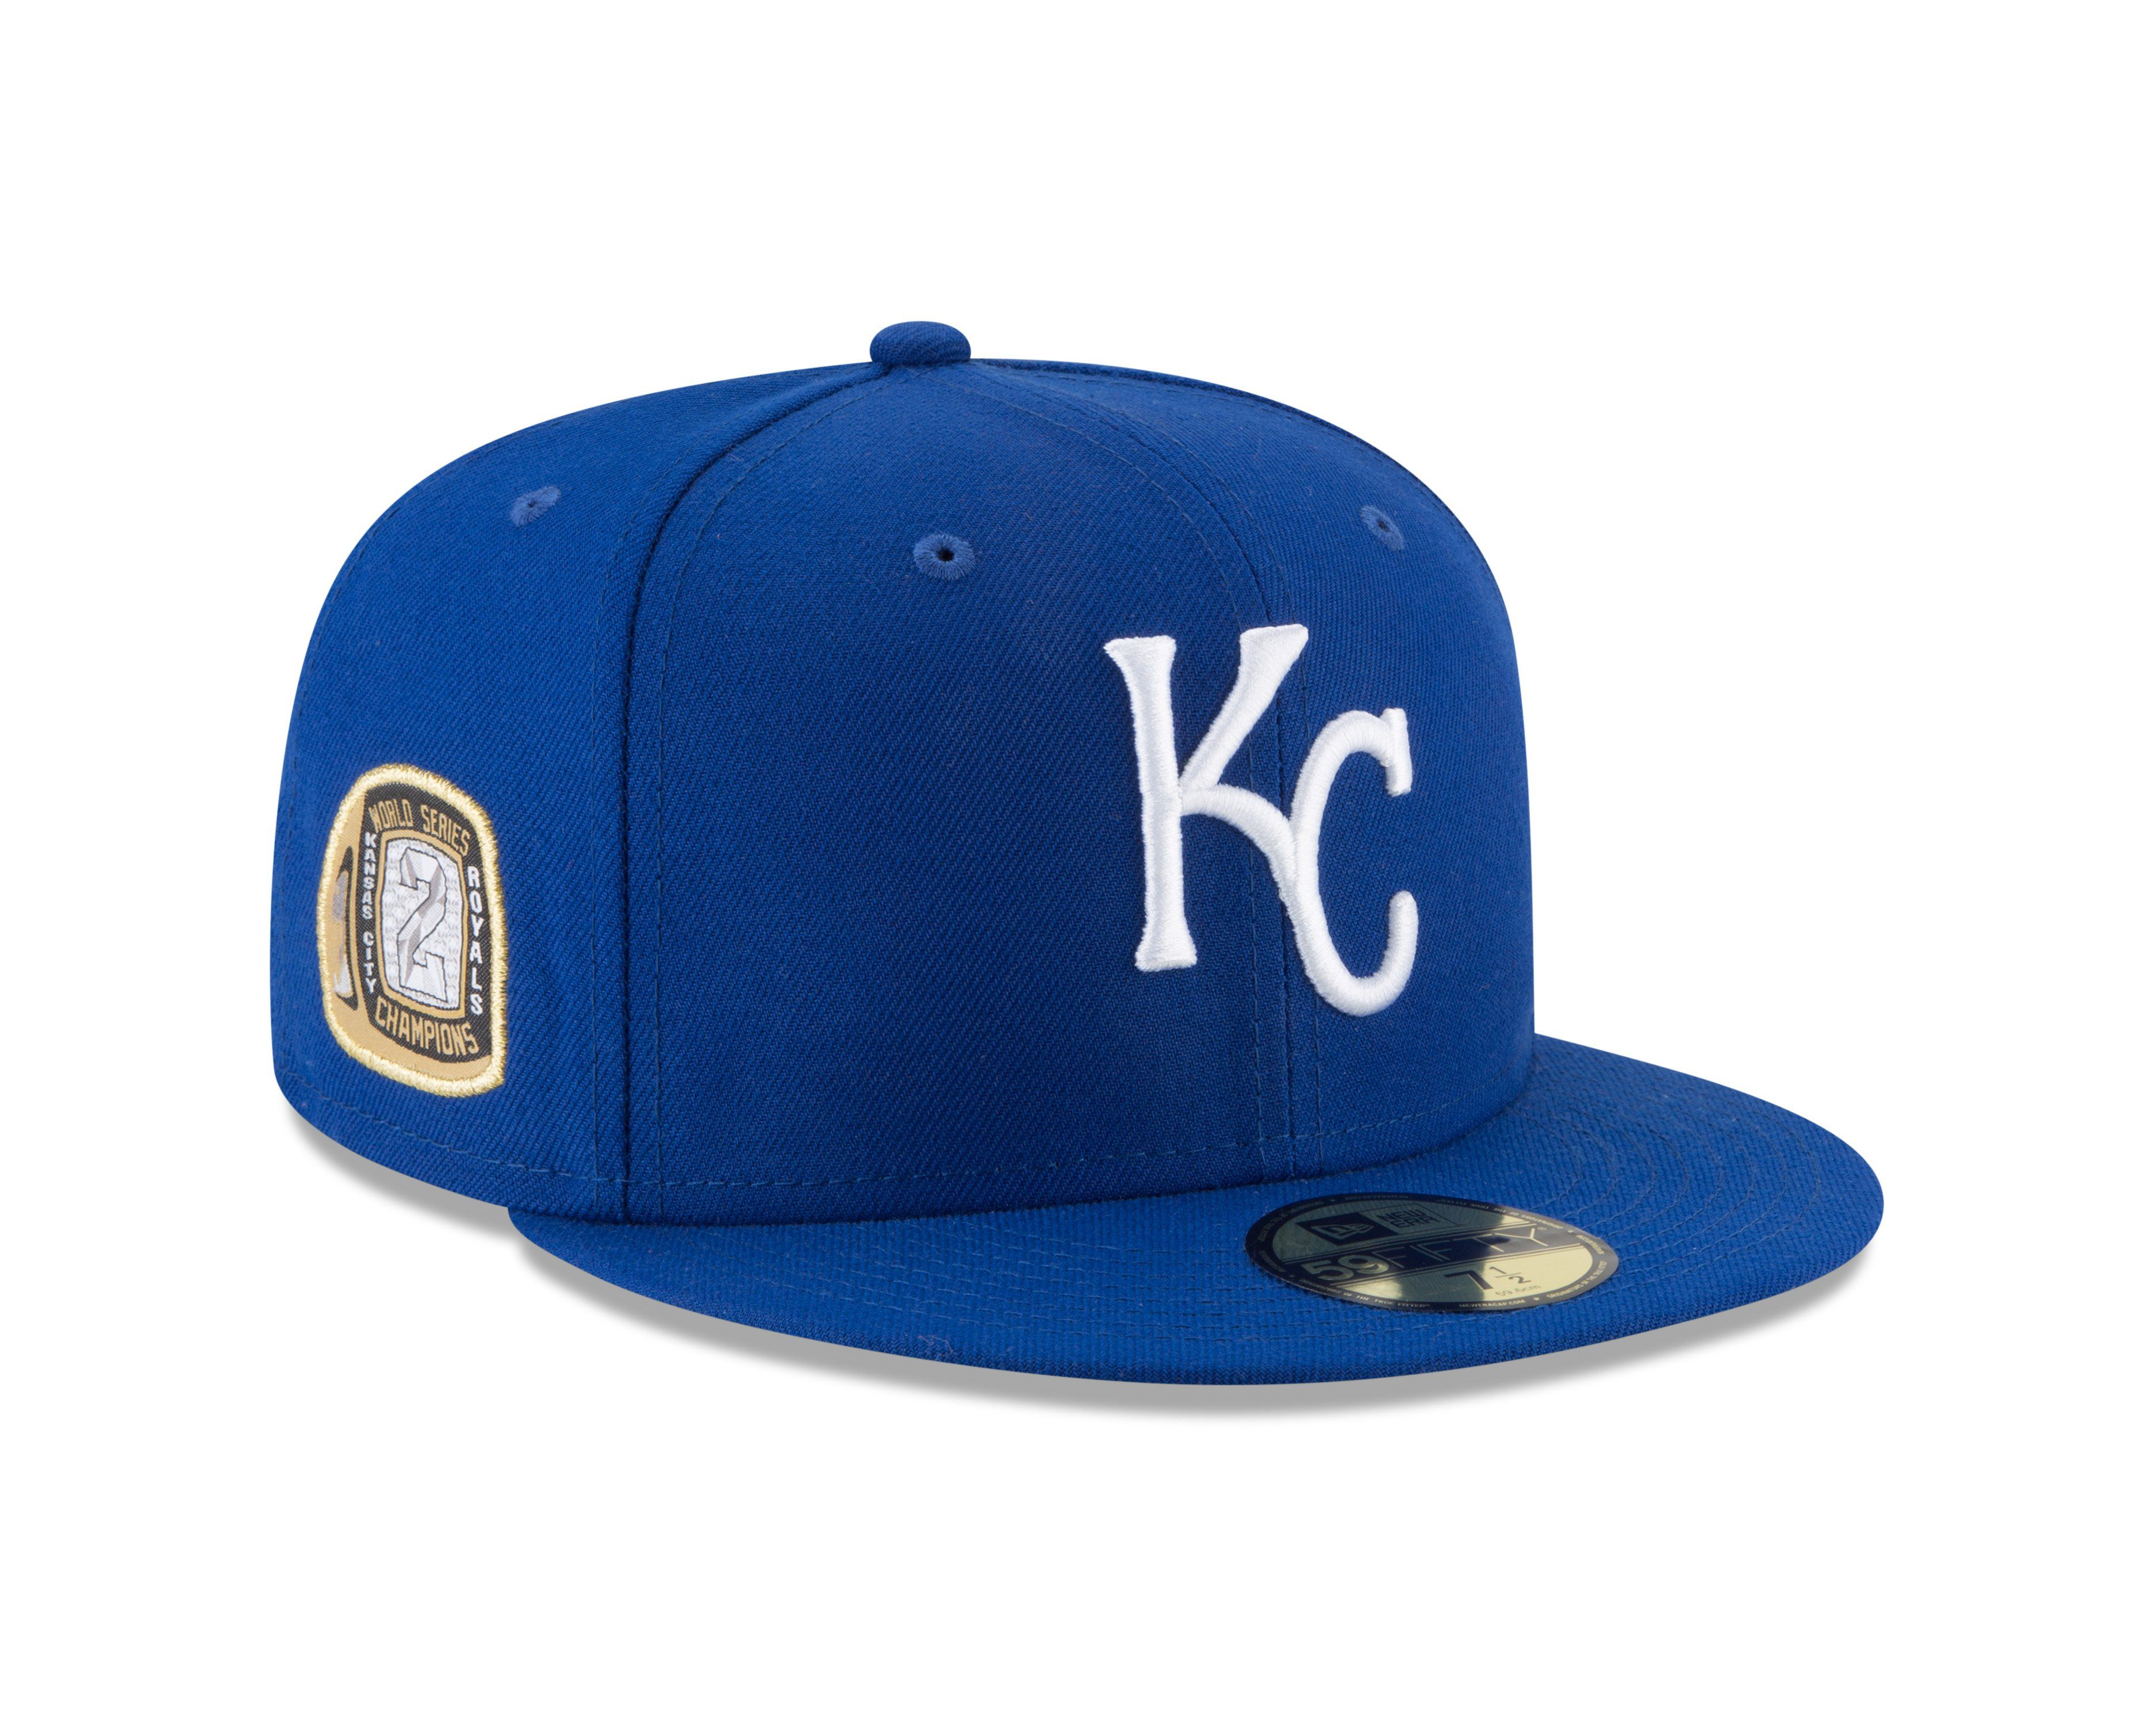 wholesale dealer aa2bd 514cc    DUE TO OUR AGREEMENT WITH NEW ERA, WE MAY ONLY SELL THESE HATS IN STORE.  IF YOU HAVE ANY QUESTIONS PLEASE CALL US AT (816) 781-3393.